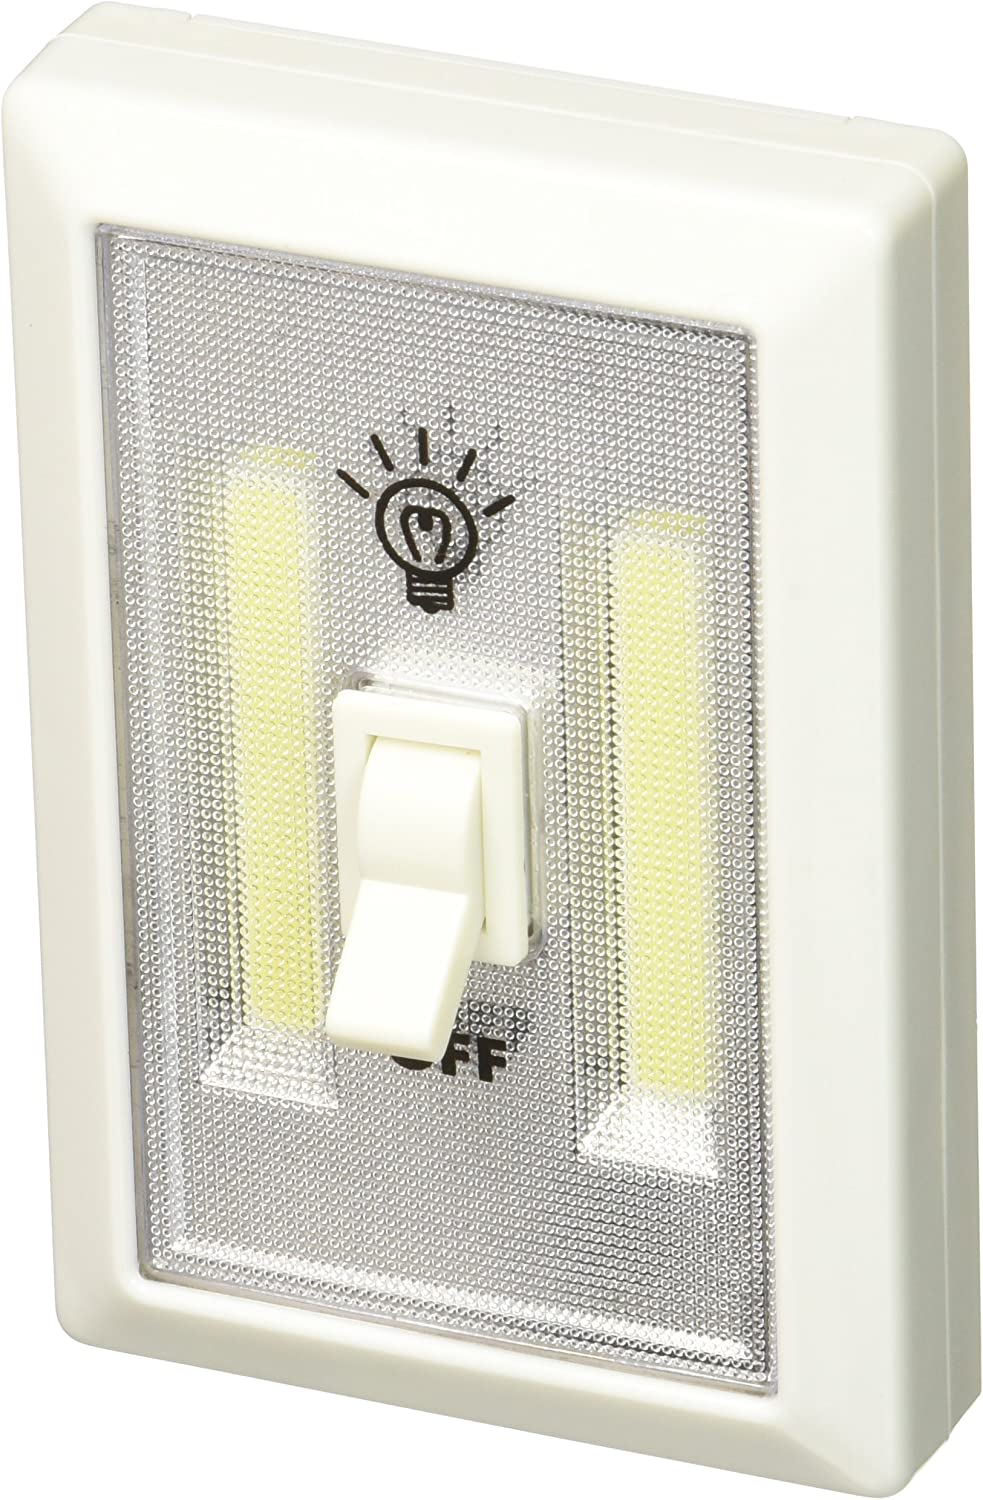 Promier Products TV207805 COB LED Switch Light